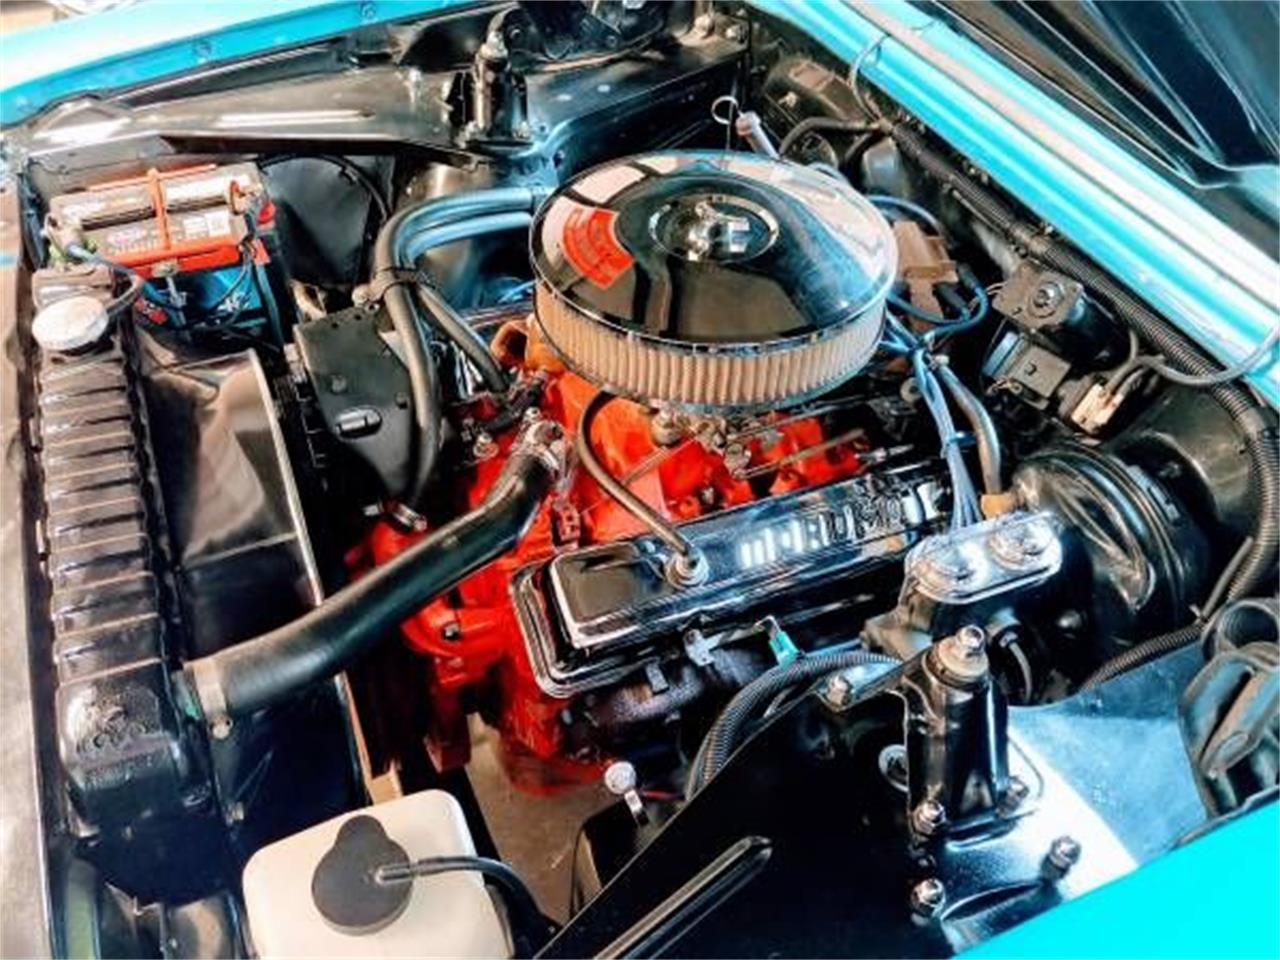 1967 Chevrolet Chevy II for sale in Cadillac, MI – photo 3